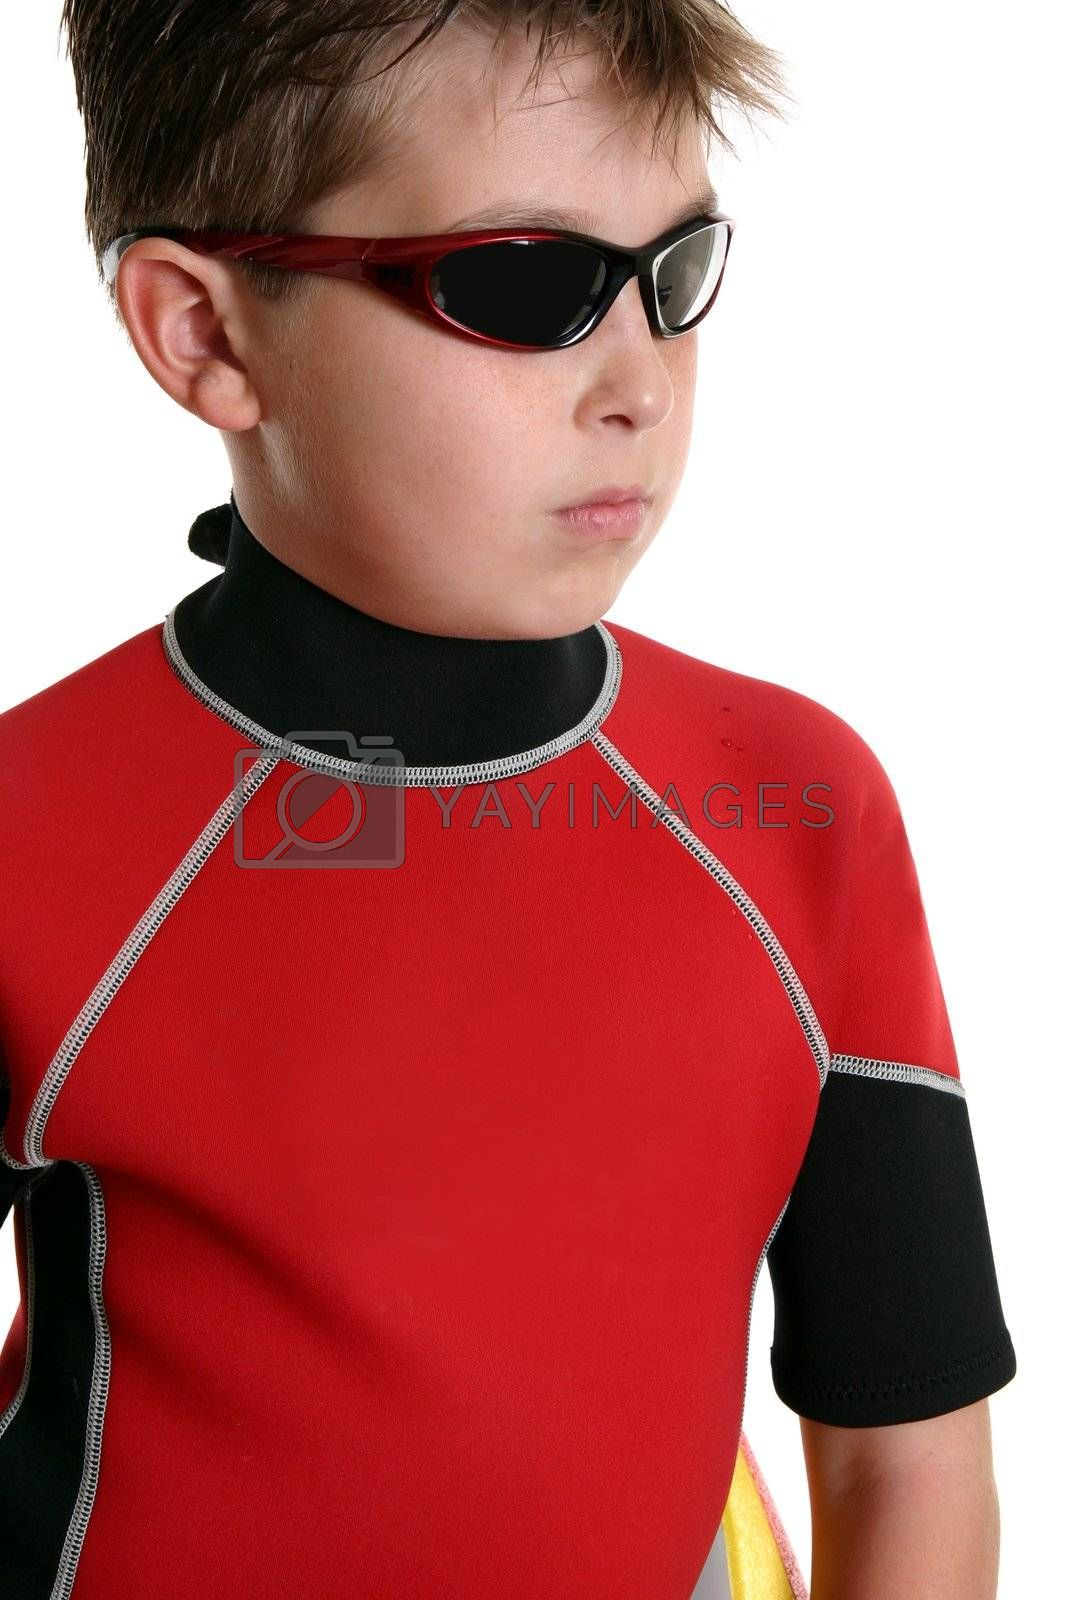 Boy in wetsuit and sunglasses by lovleah